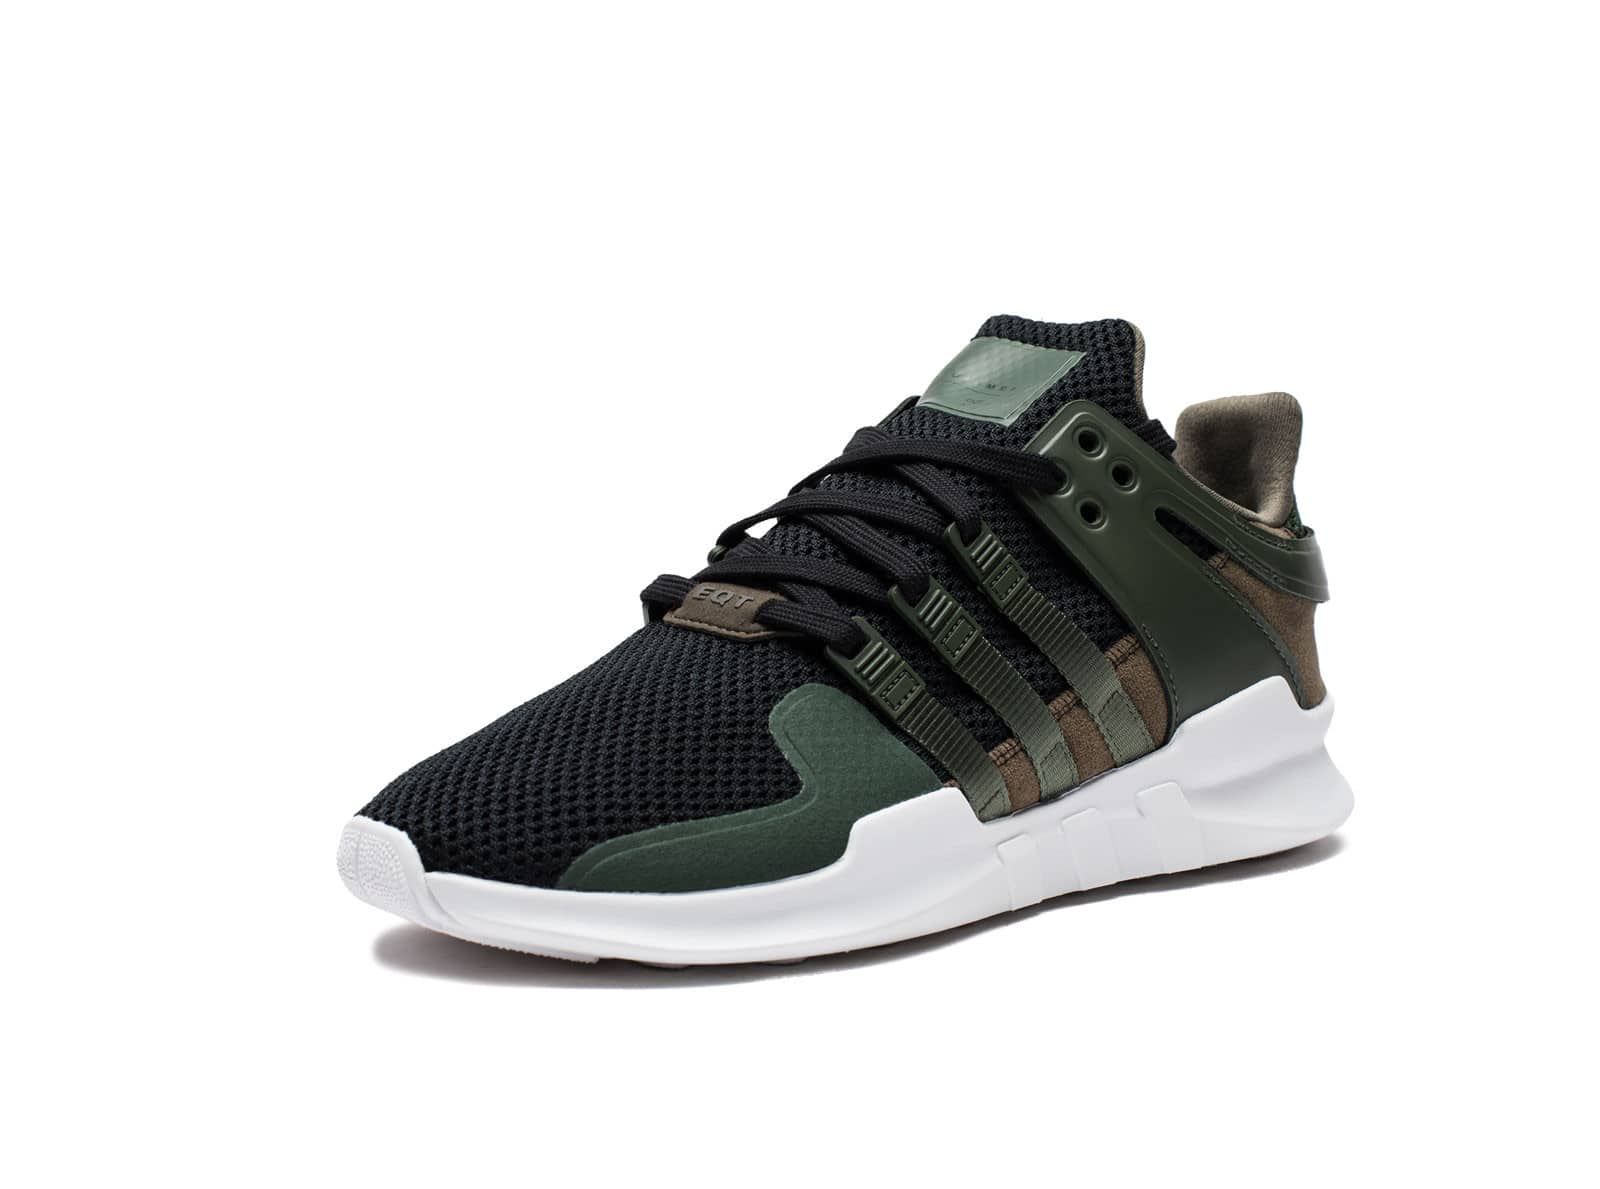 EQT SUPPORT ADV - BRANCH/BLACK/SHAGRN